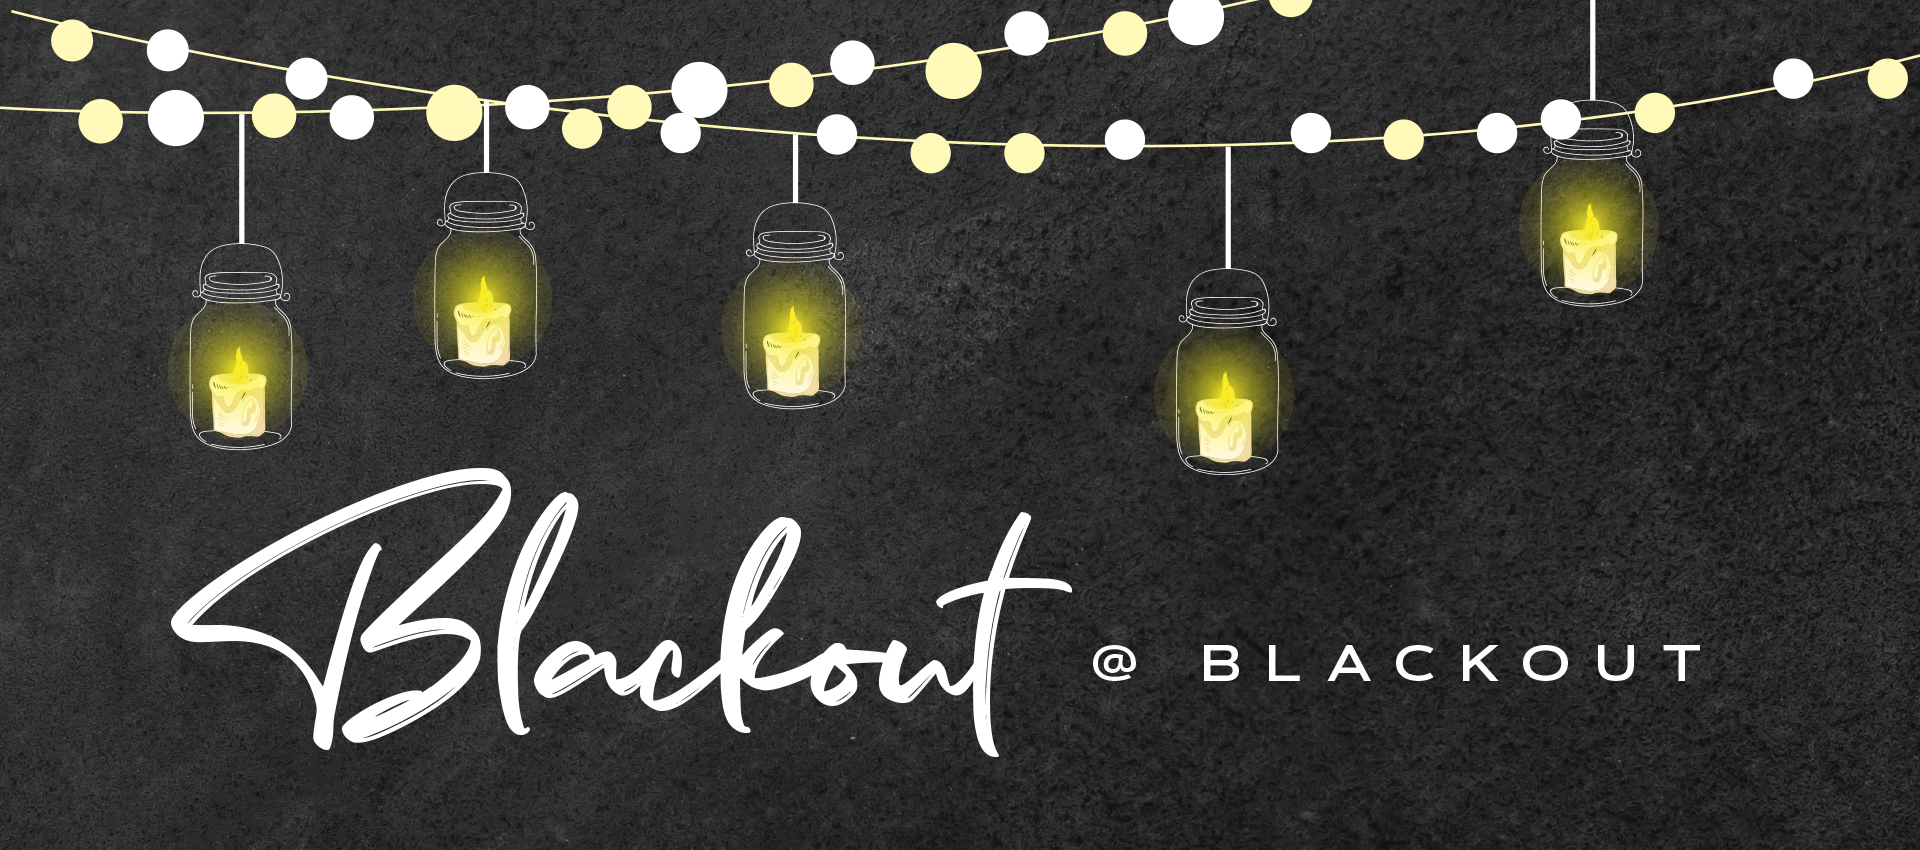 blackout-at-blackout_fb-event-cover-2